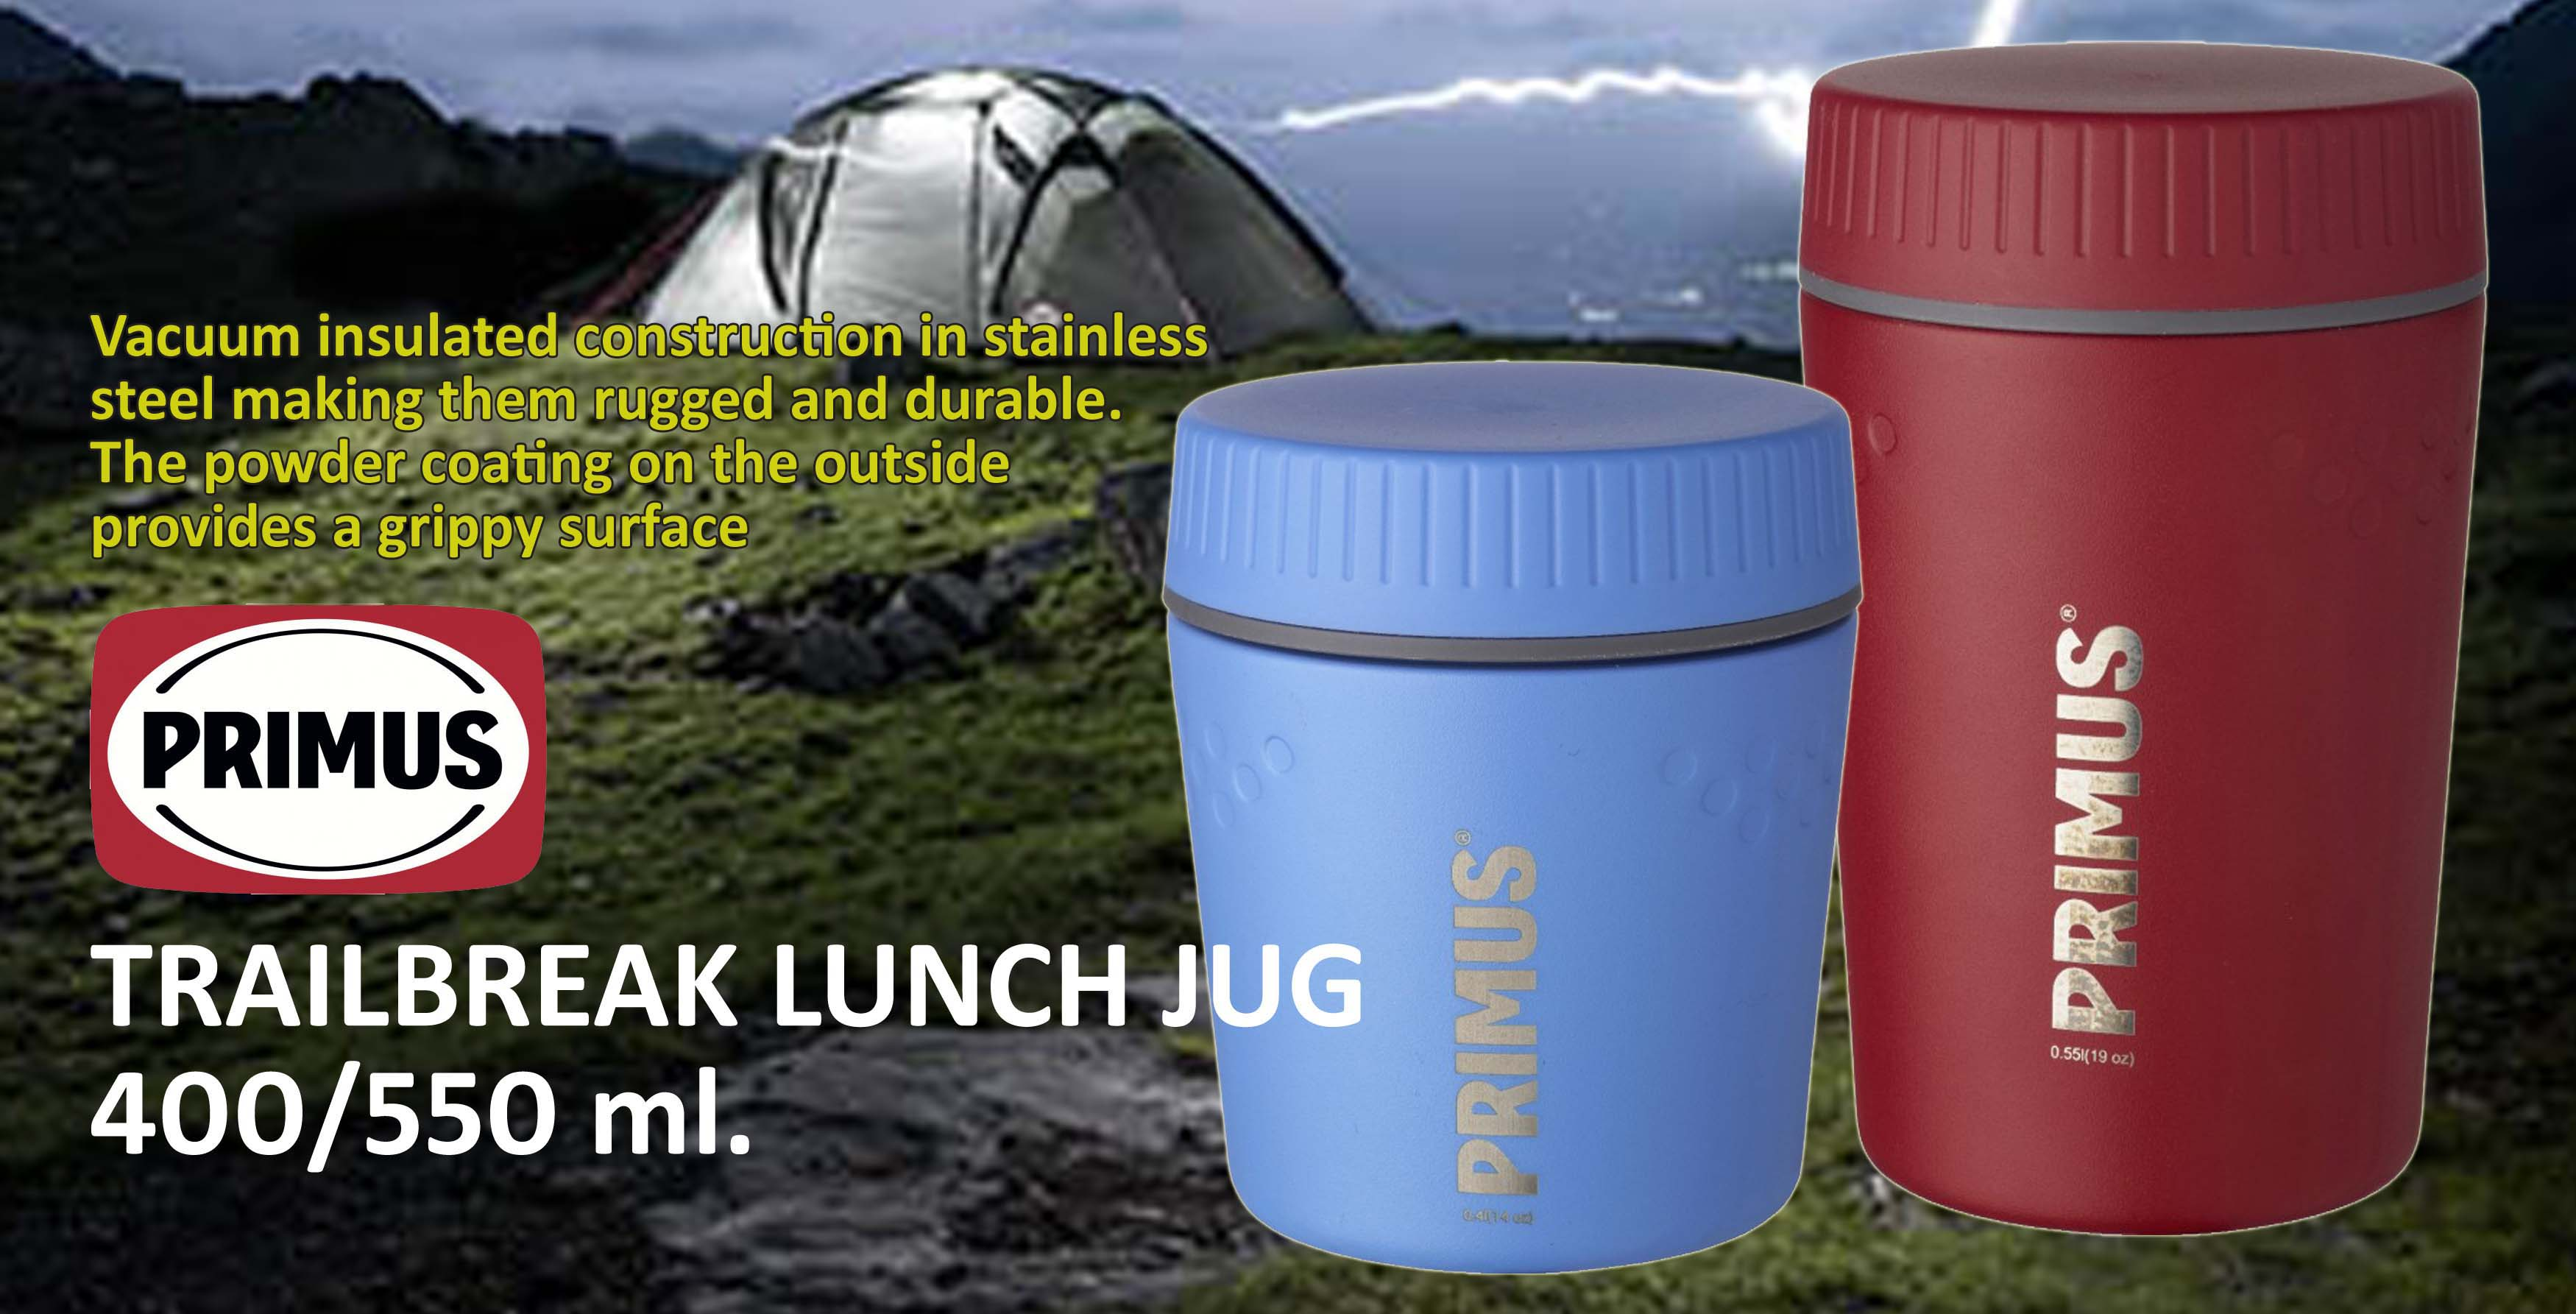 primus-trailbreak-lunch-jug